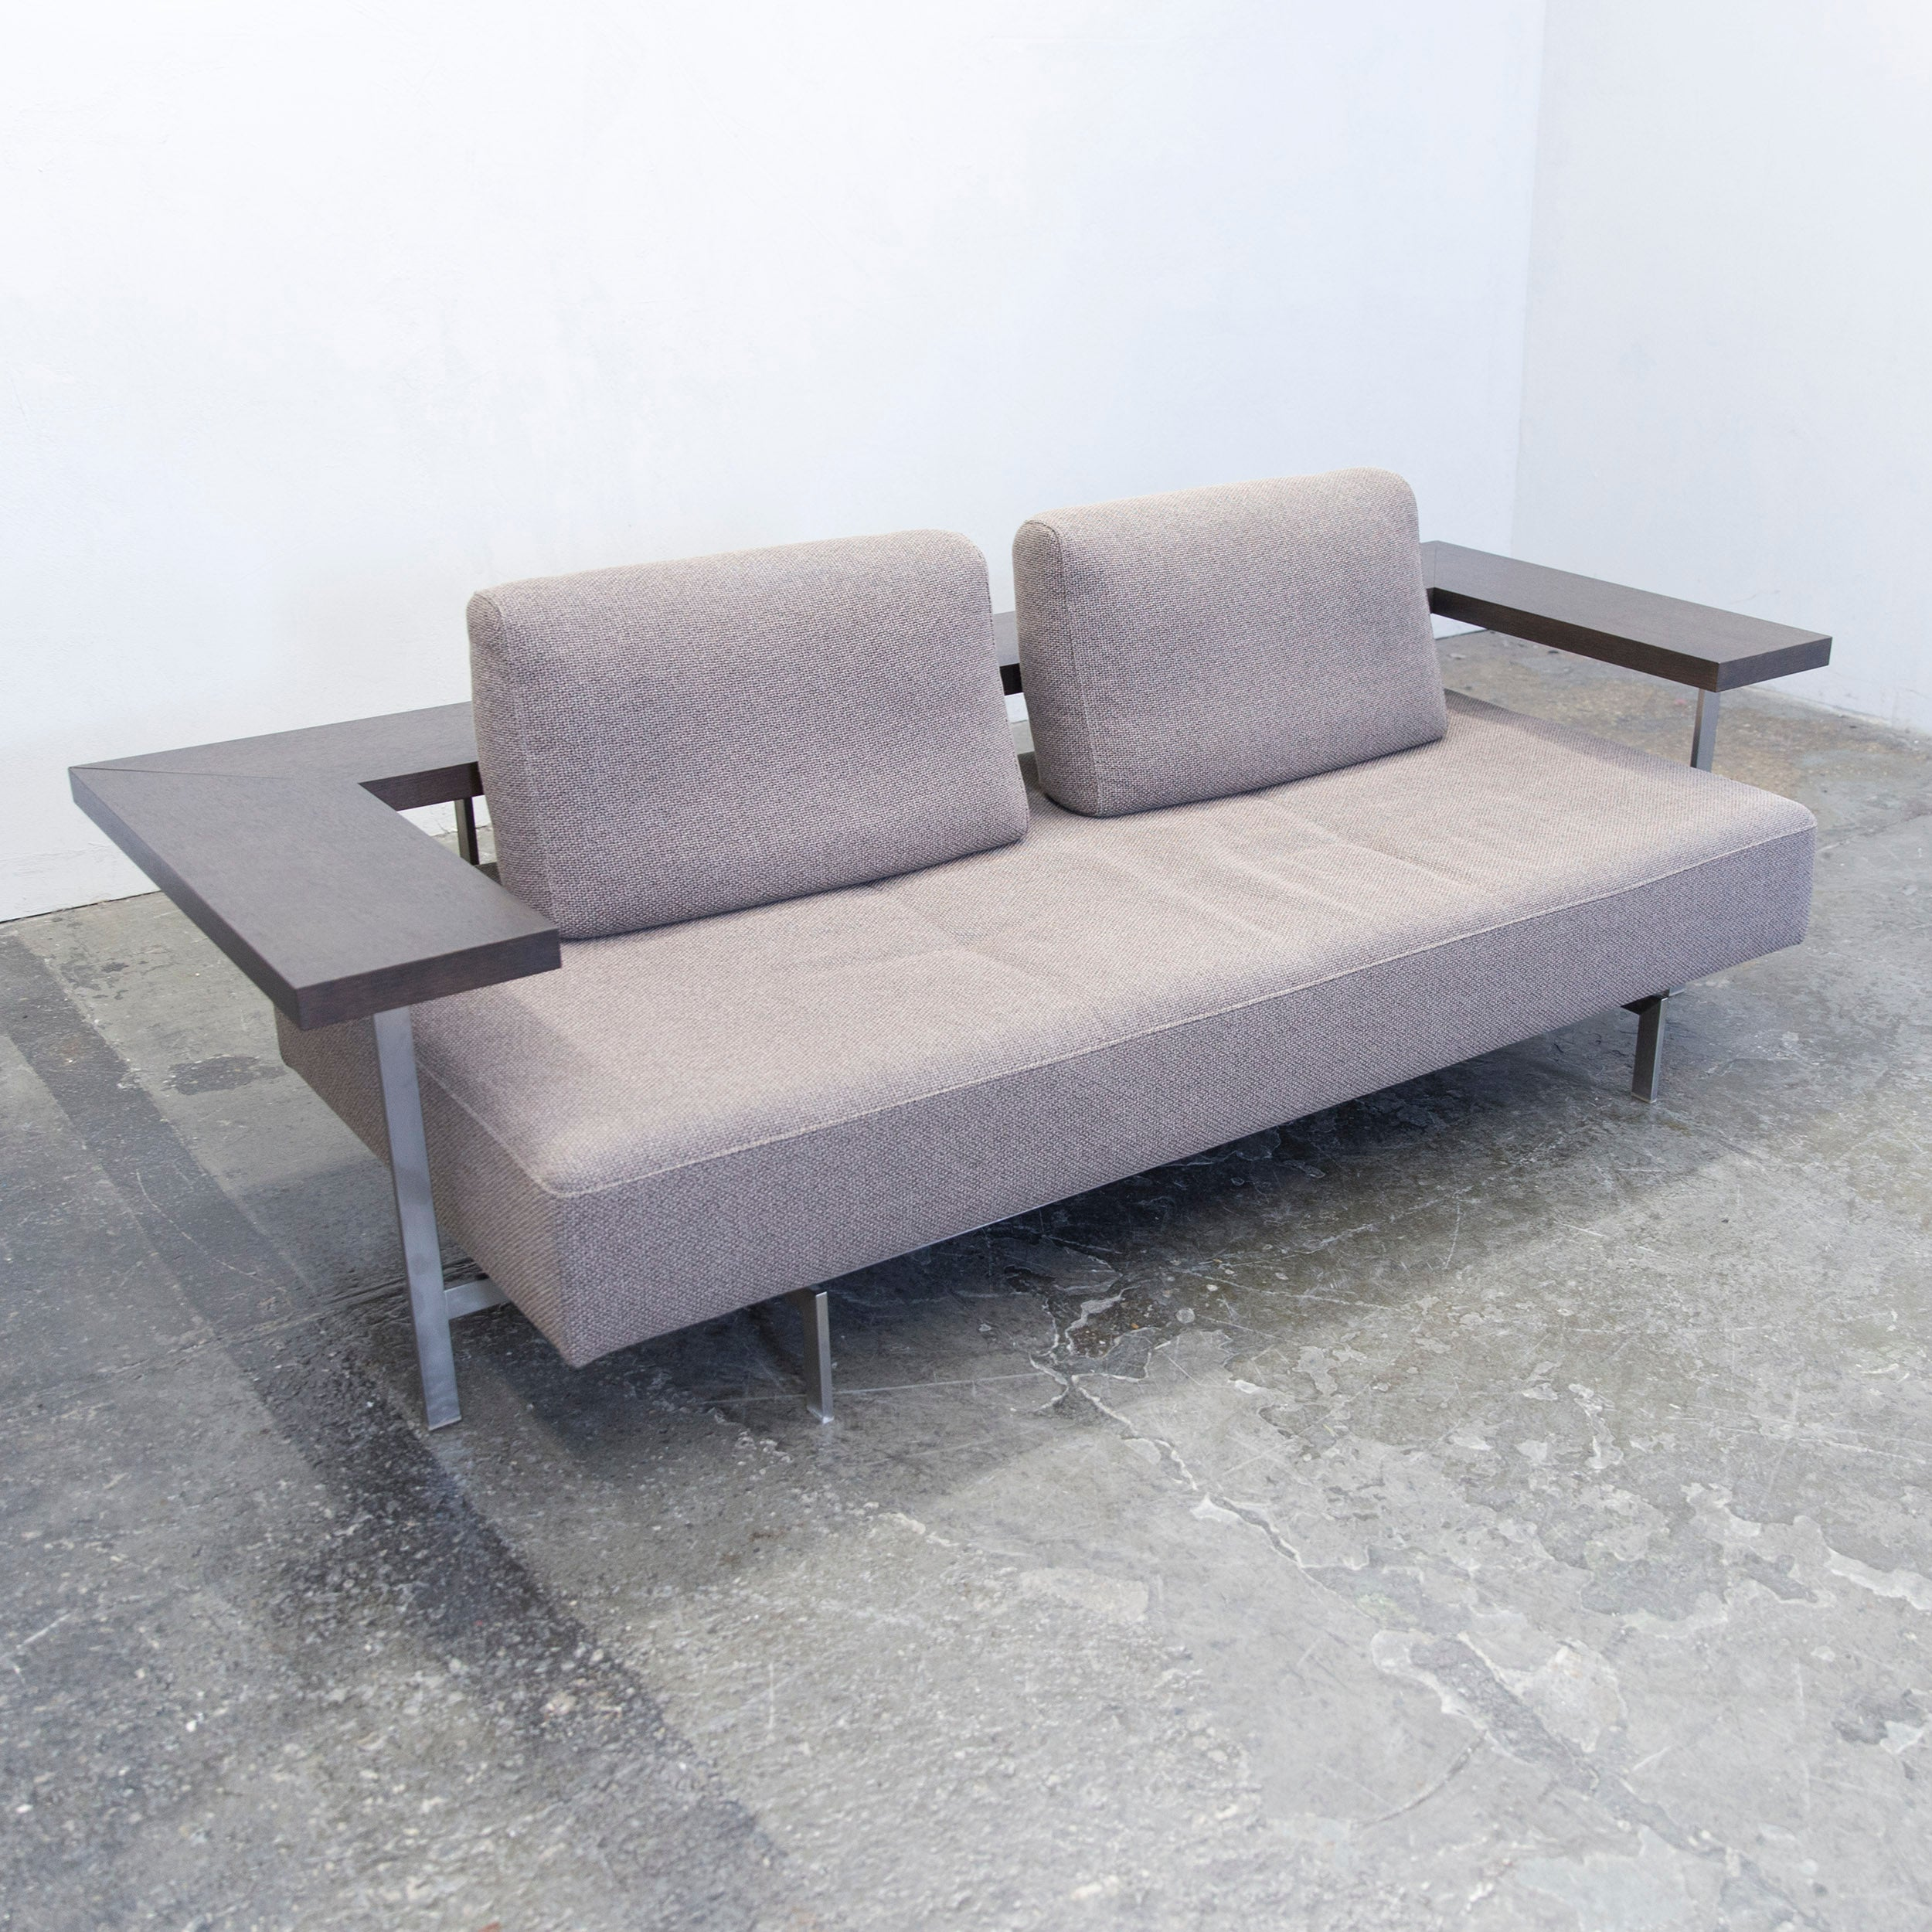 Excellent Rolf Benz Dono Designer Sofa Grey Fabric Twoseat Couch Modern At  Stdibs With Sofa Grau Modern